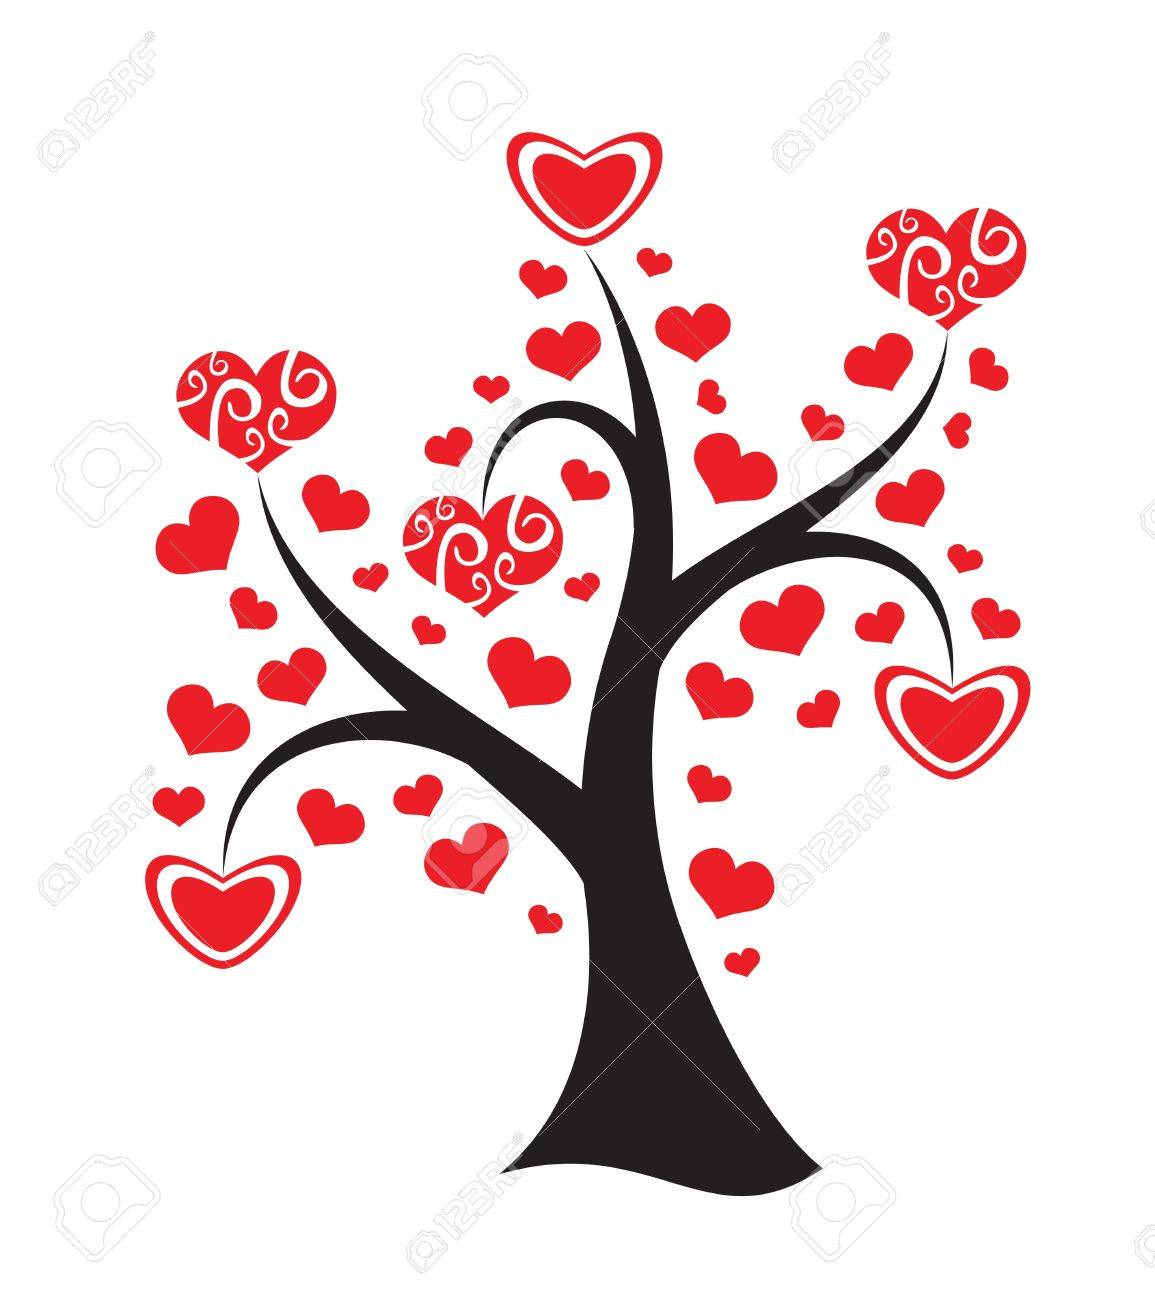 Image result for love tree cartoons